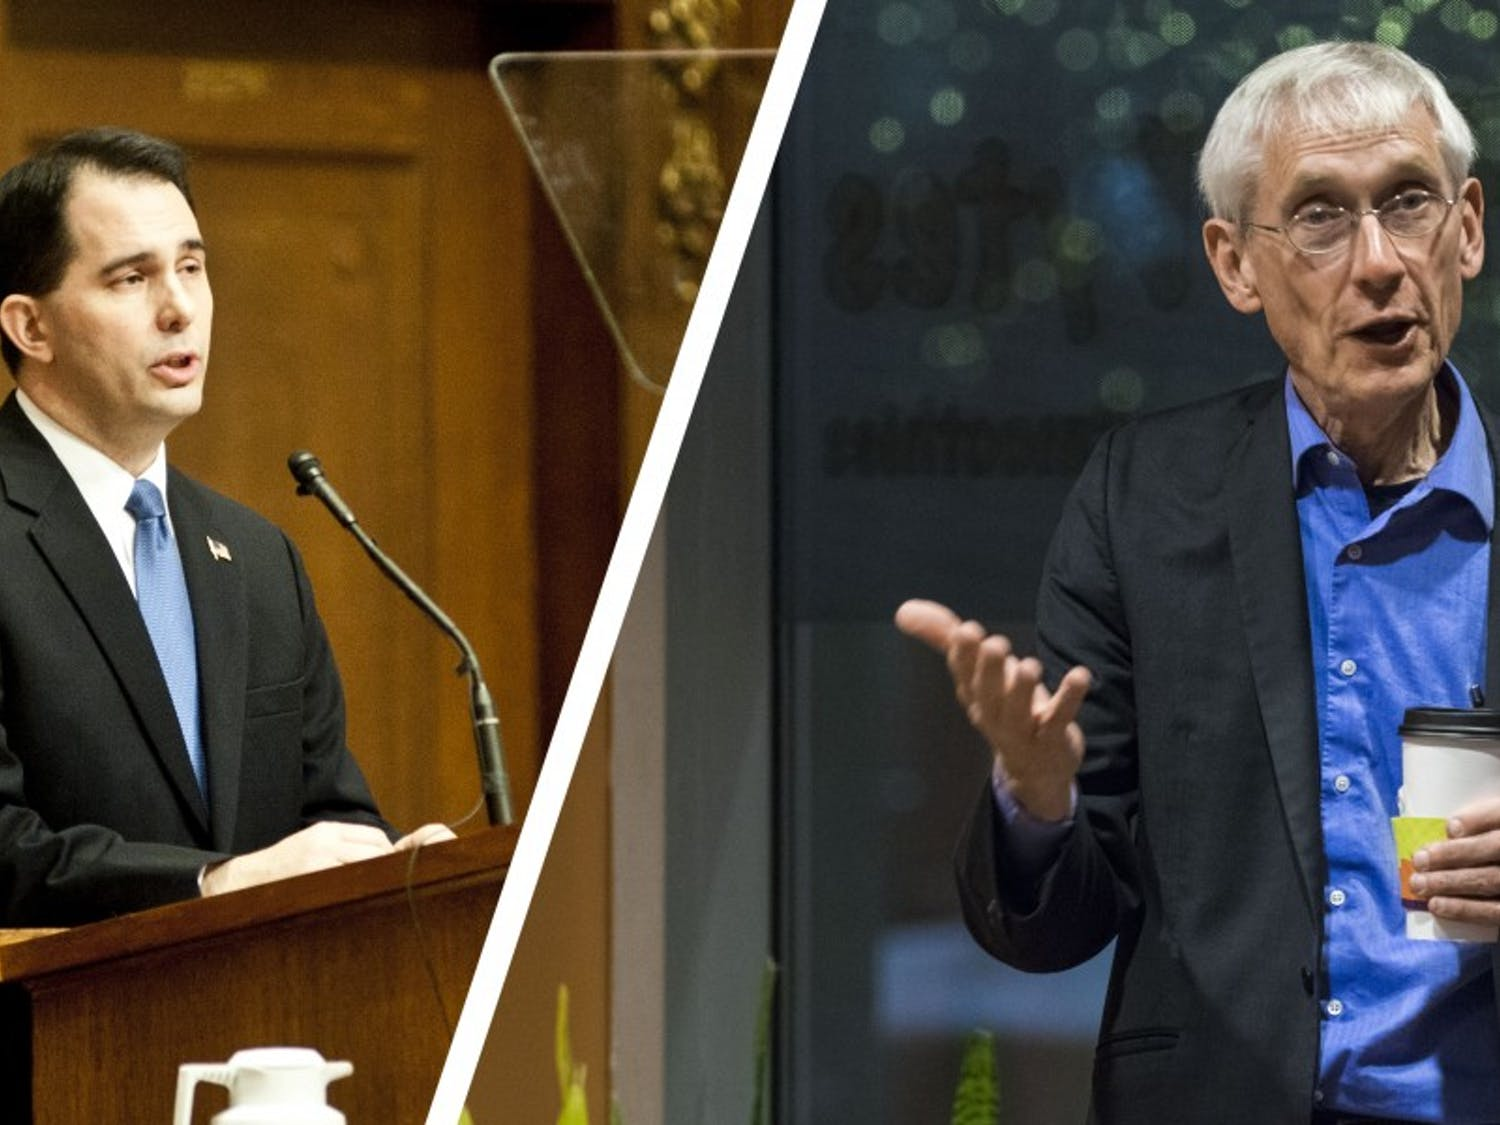 Gov. Scott Walker and Democratic governor candidate Tony Evers appeal to voters on the opposite side of their respective aisles.